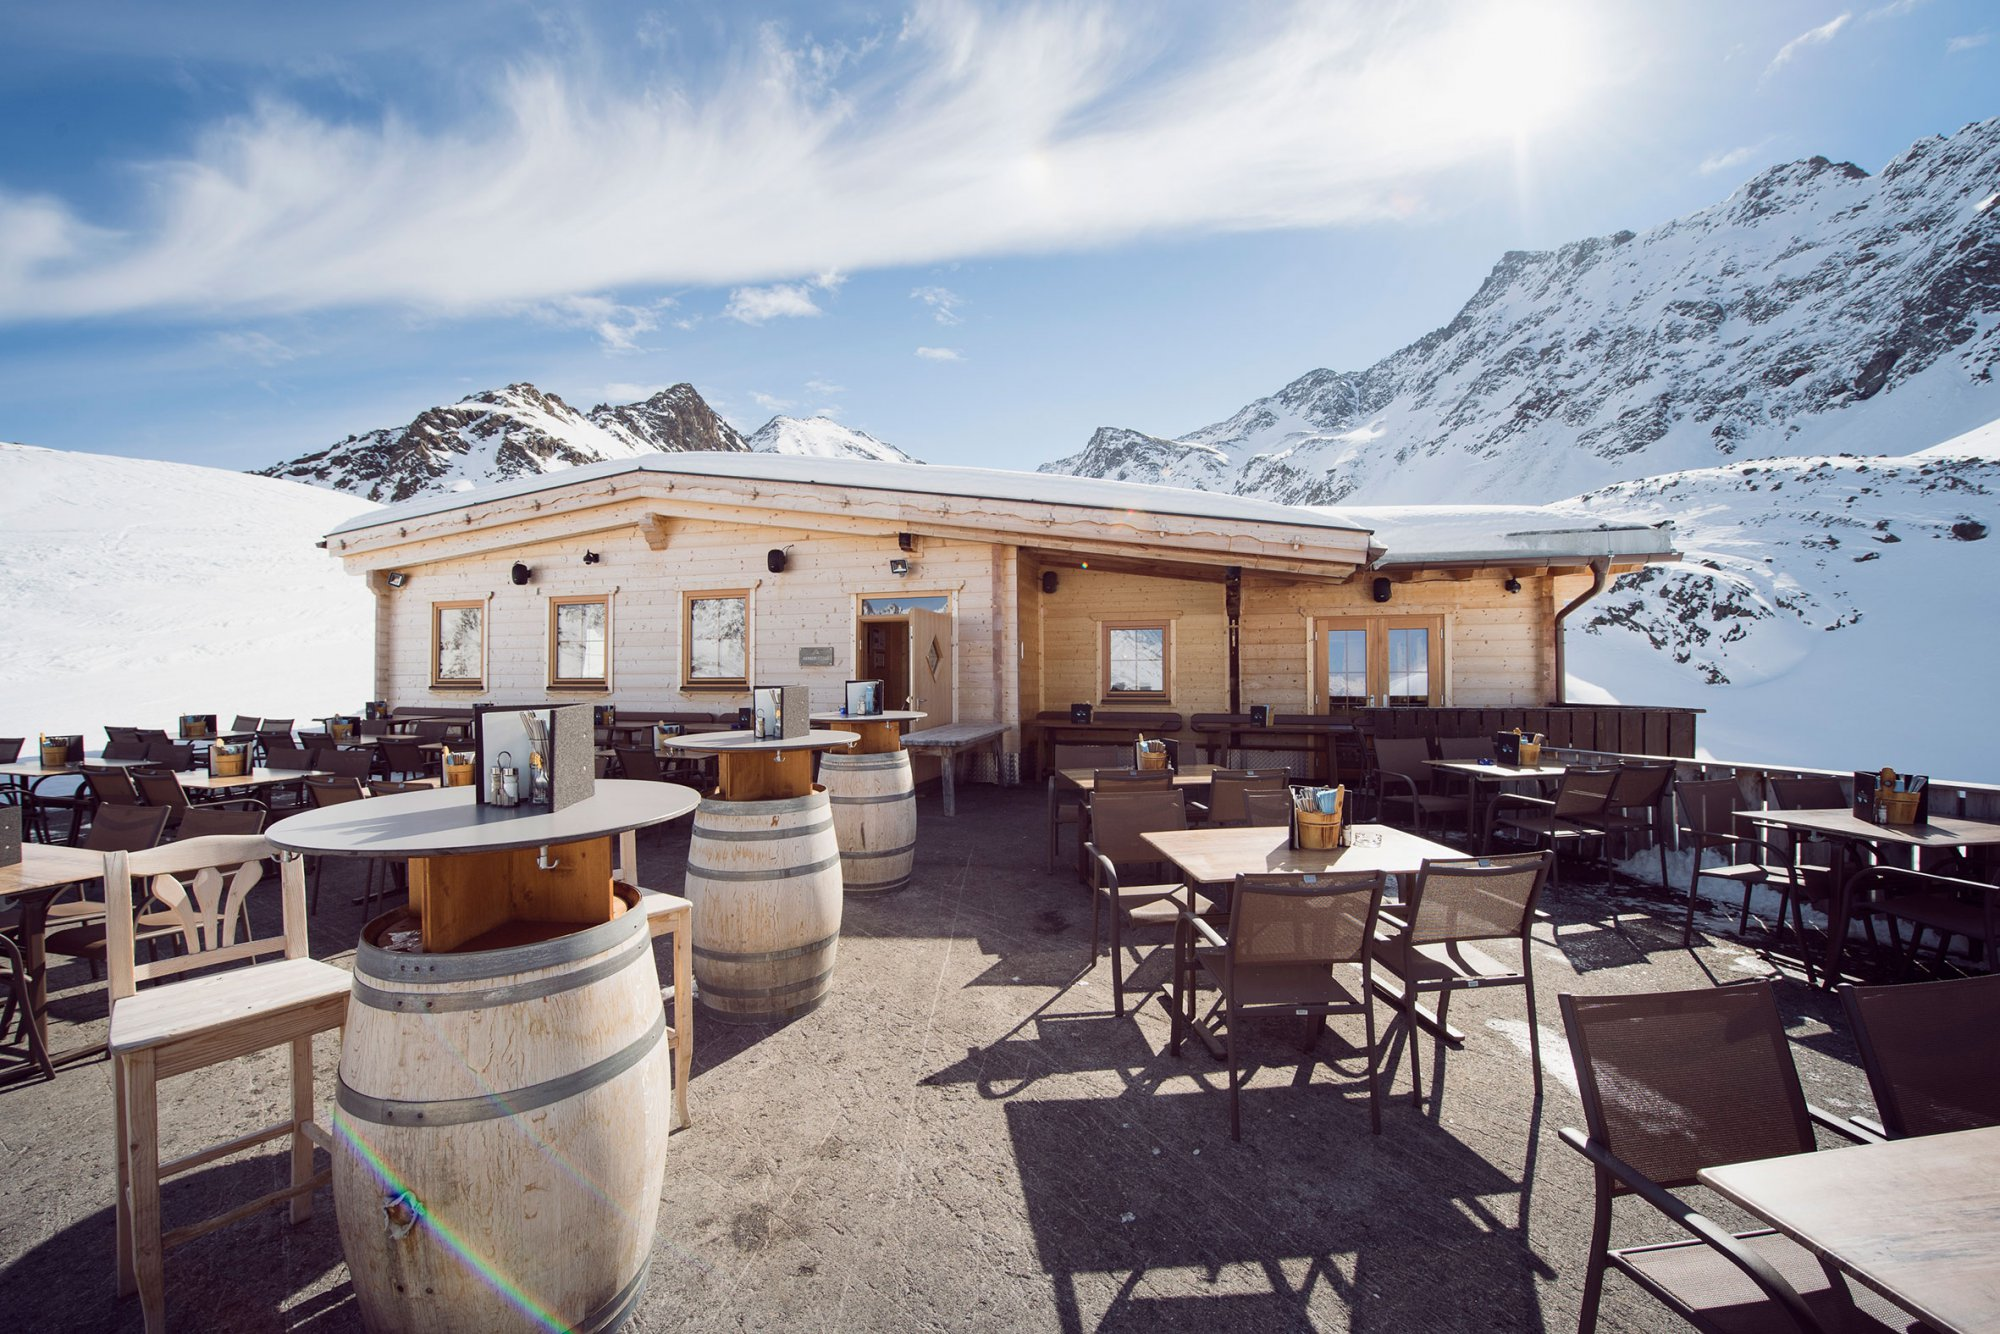 The panoramic terrace at the Drei Seen Hütte is the right place for après ski drinks